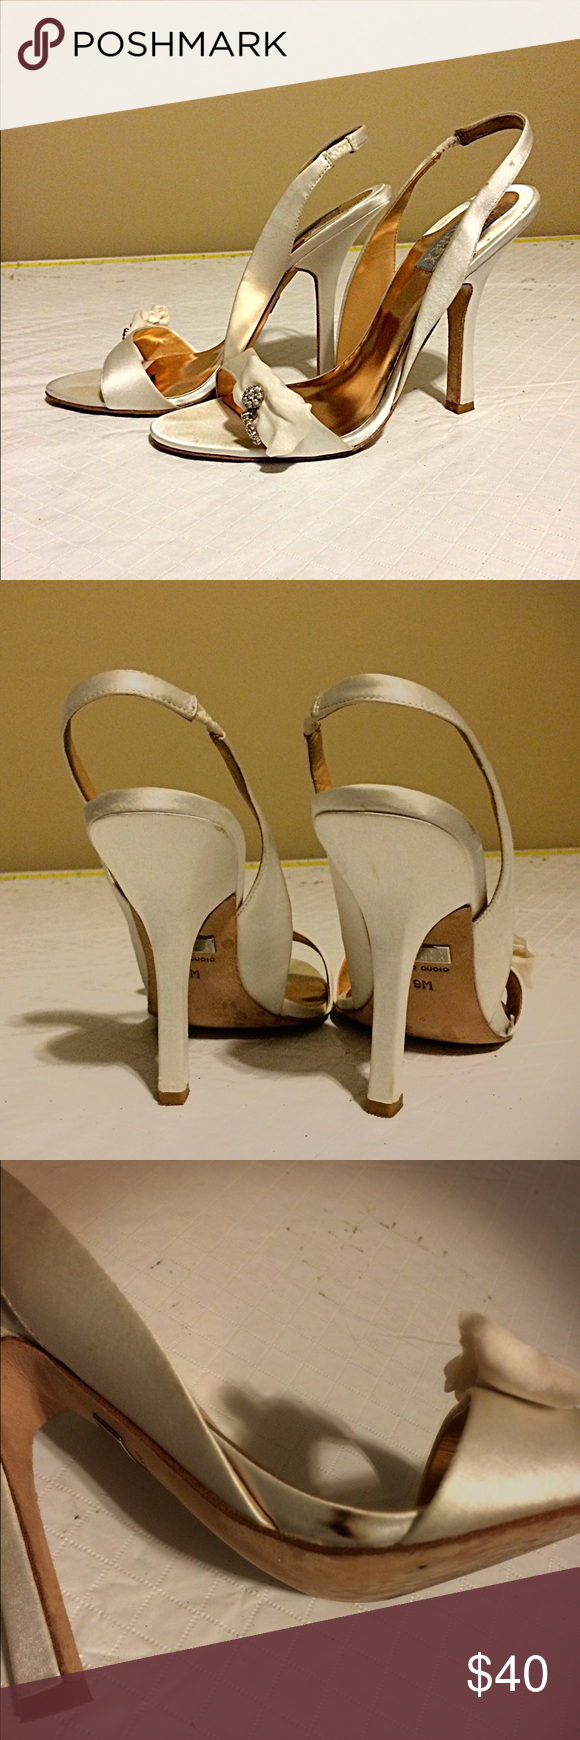 Badgley Mischka Harrow Slingback Satin Sandals Classic , simple yet beautiful shoes with a high heels but not too high that you can't dance in them))). One flaw- small dark spot on the outside part of the show- as shown in picture above. White off color. Badgley Mischka Shoes Sandals